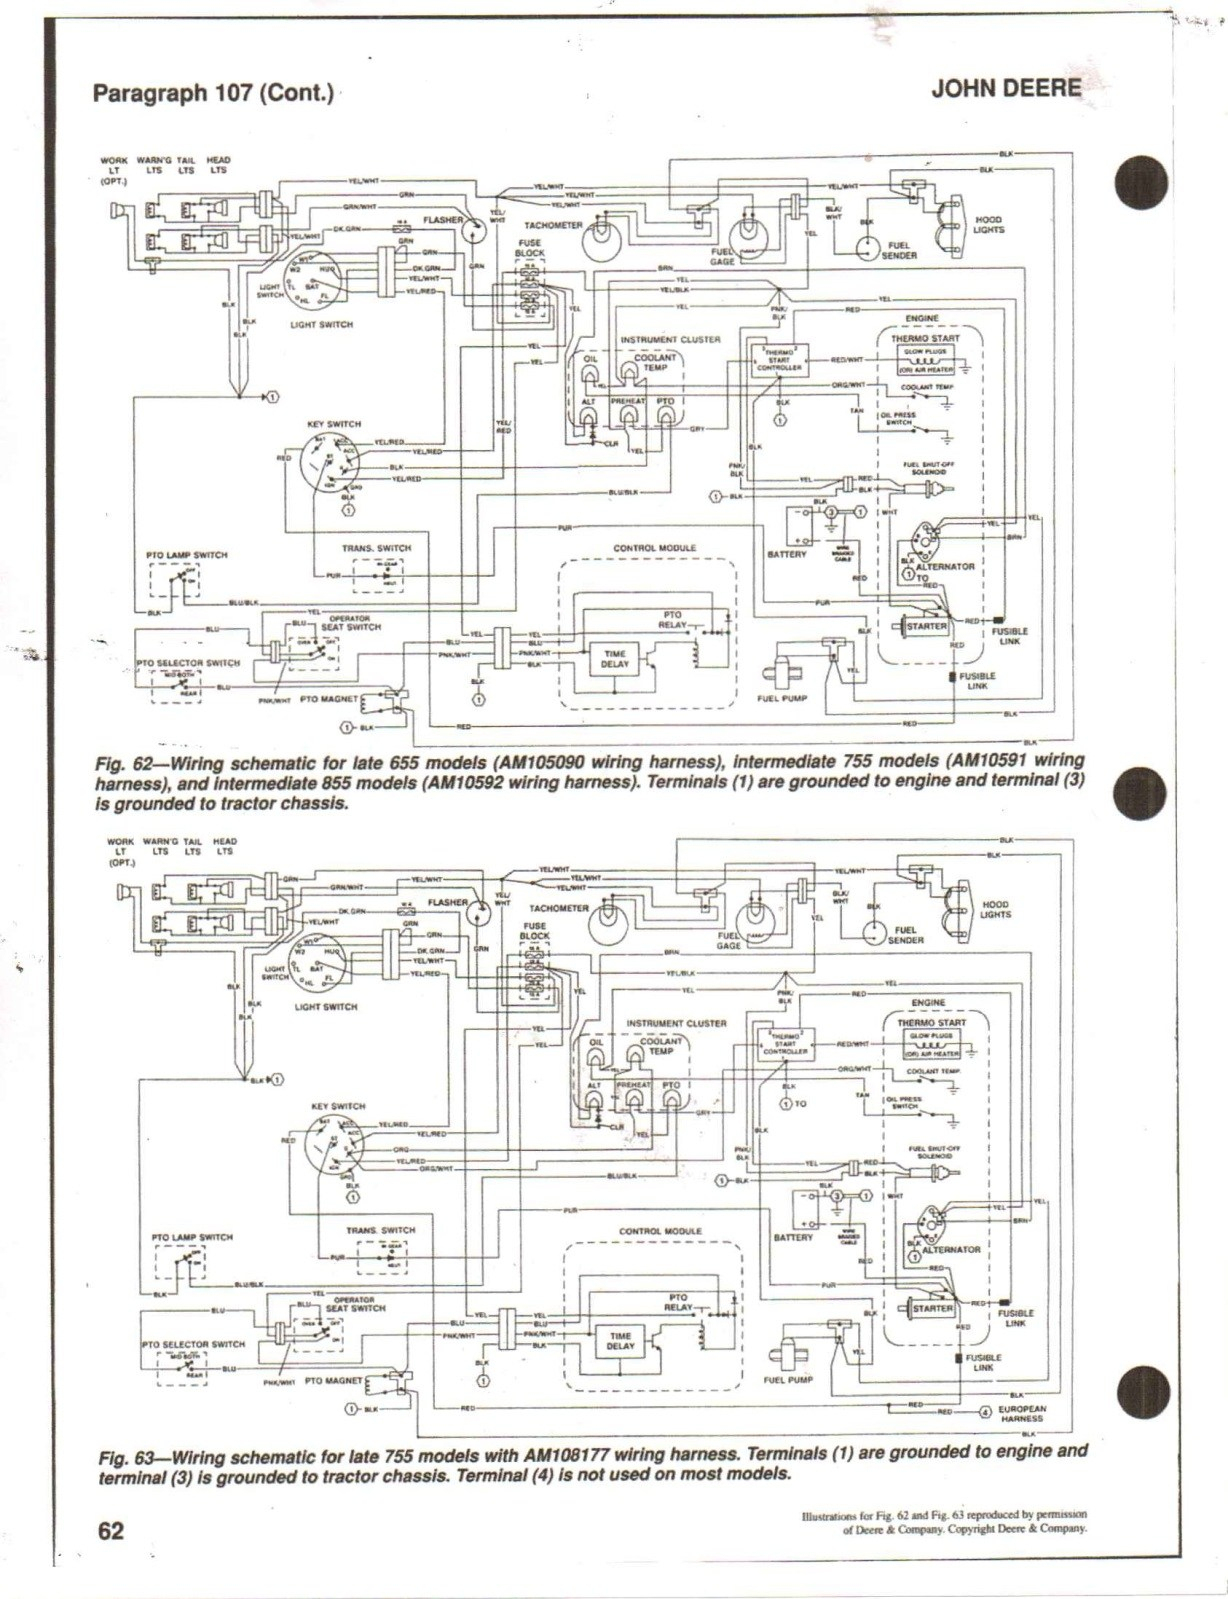 Wire Diagram For Kubota B7800 | Wiring Library - Kubota B7800 Wiring Diagram